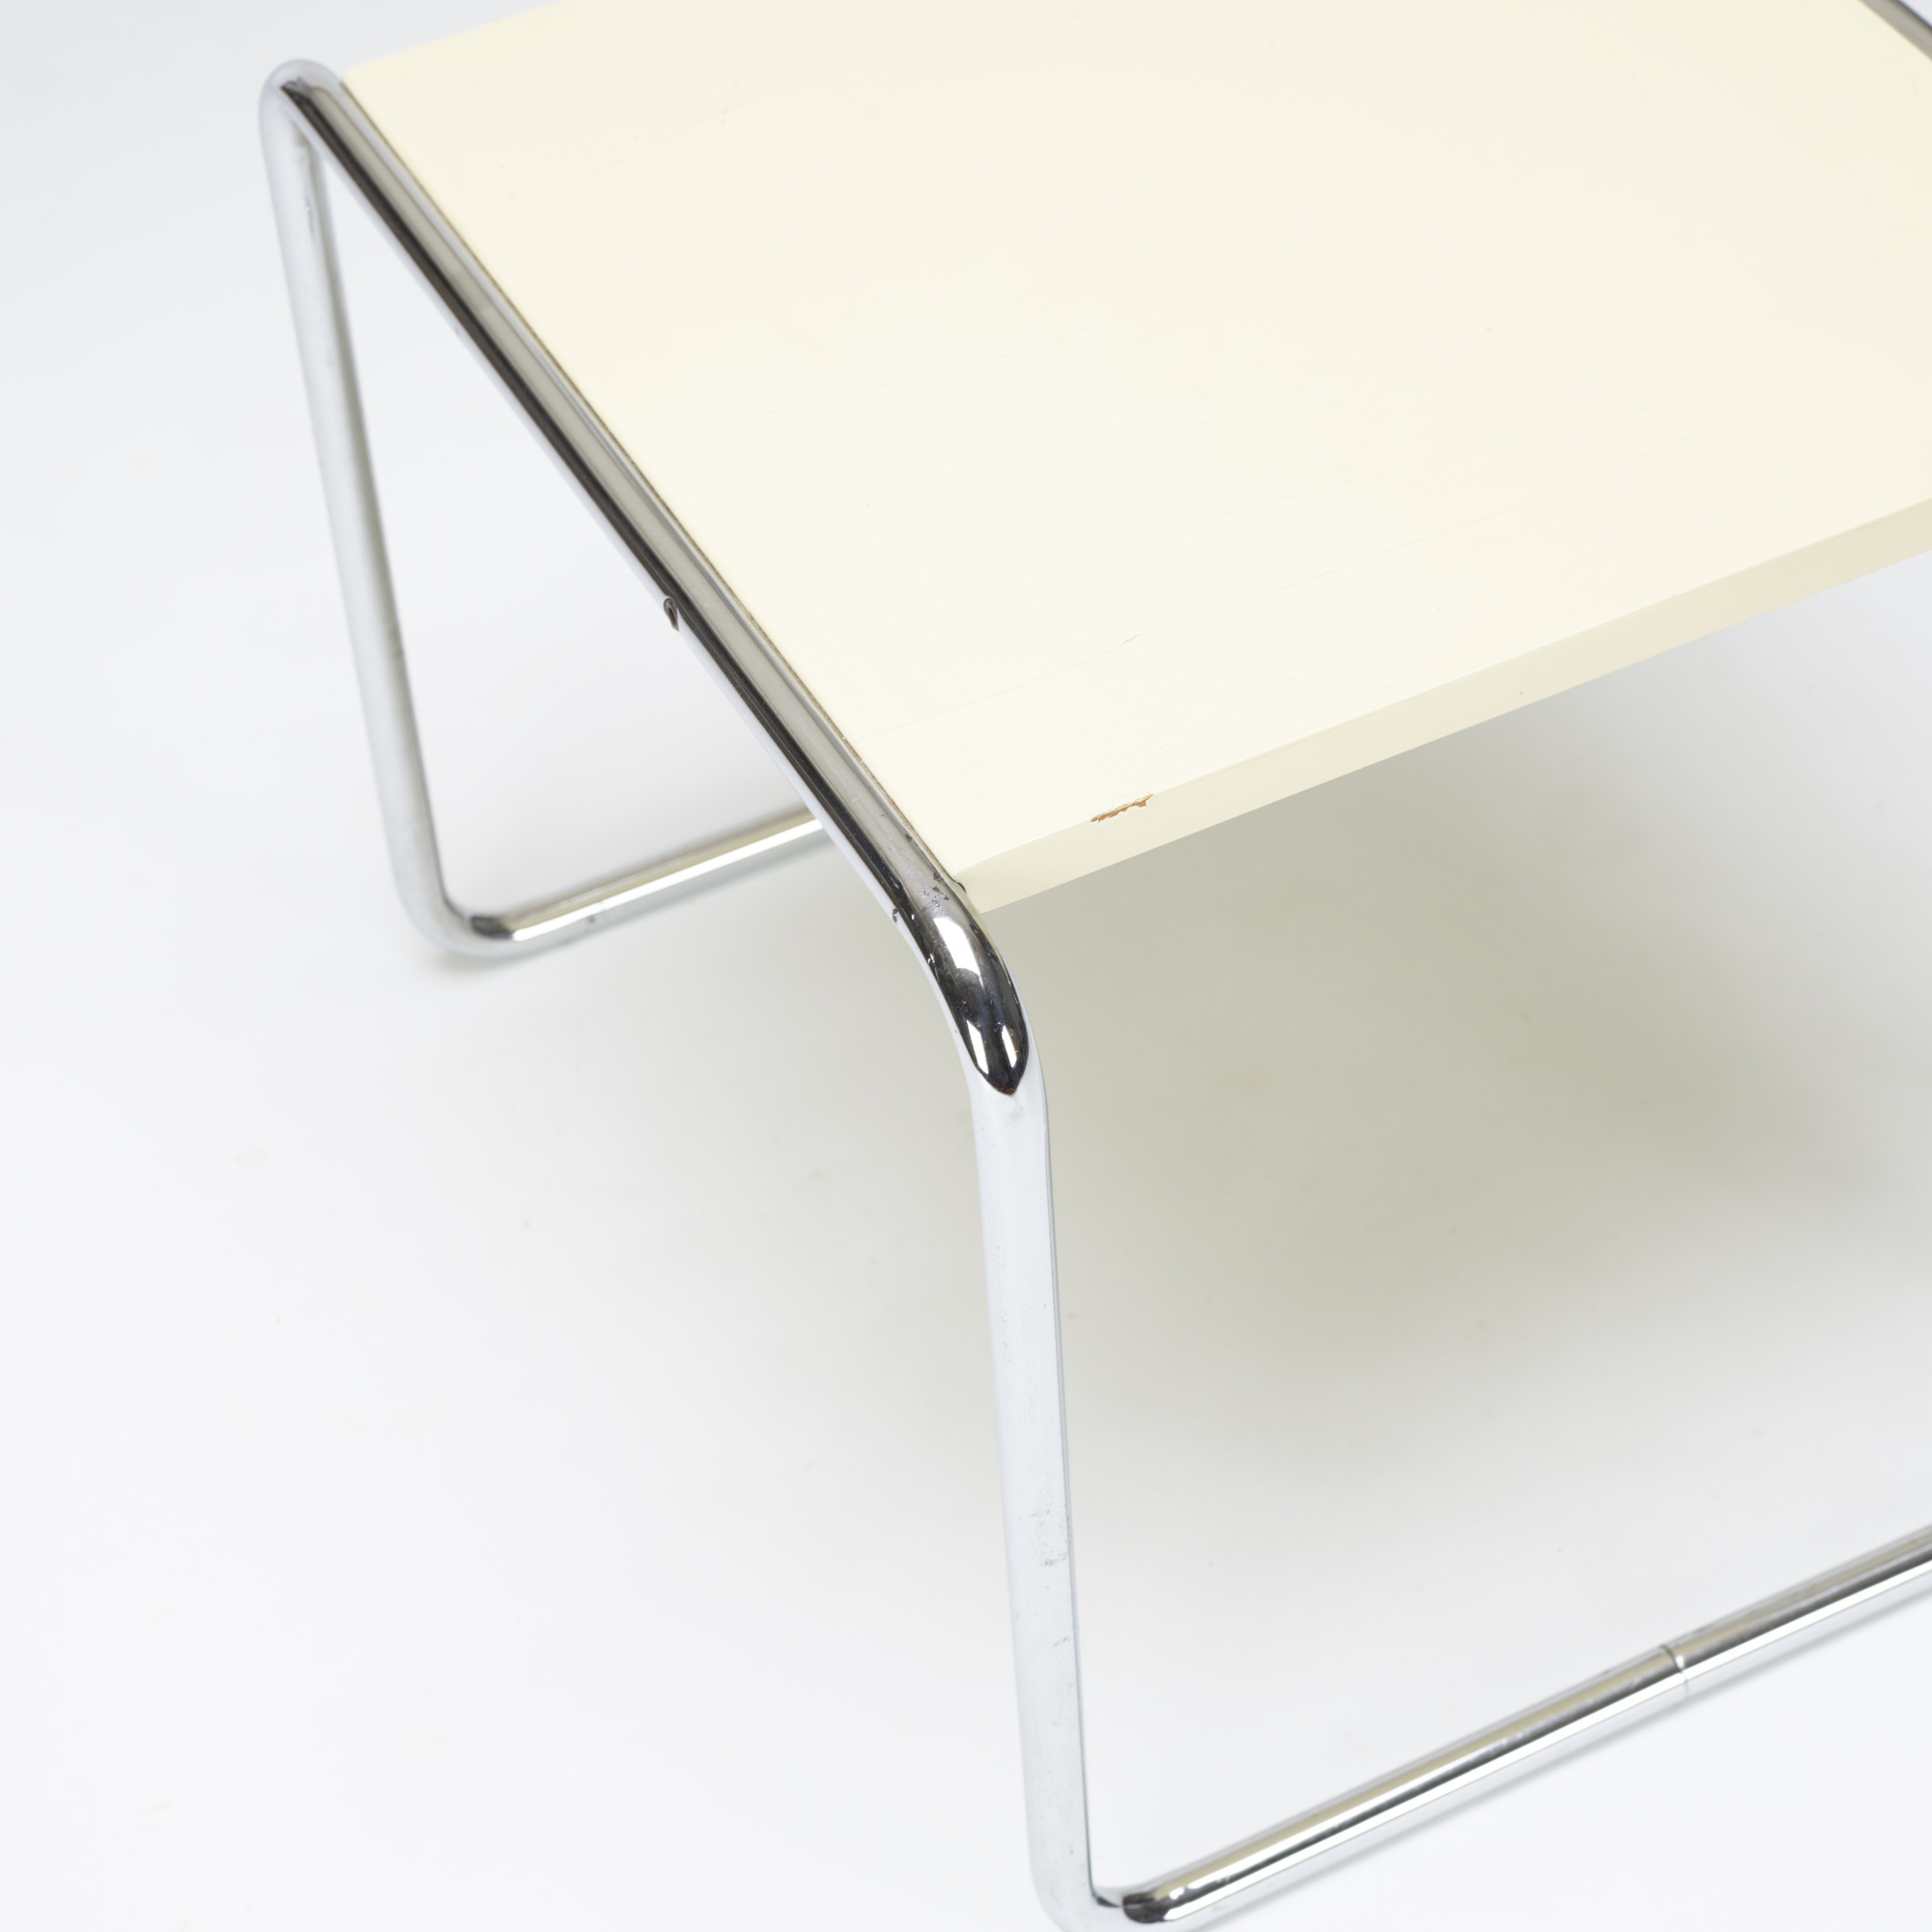 185 marcel breuer occasional table model b9 mass modern 185 marcel breuer occasional table model b9 2 of 2 geotapseo Choice Image